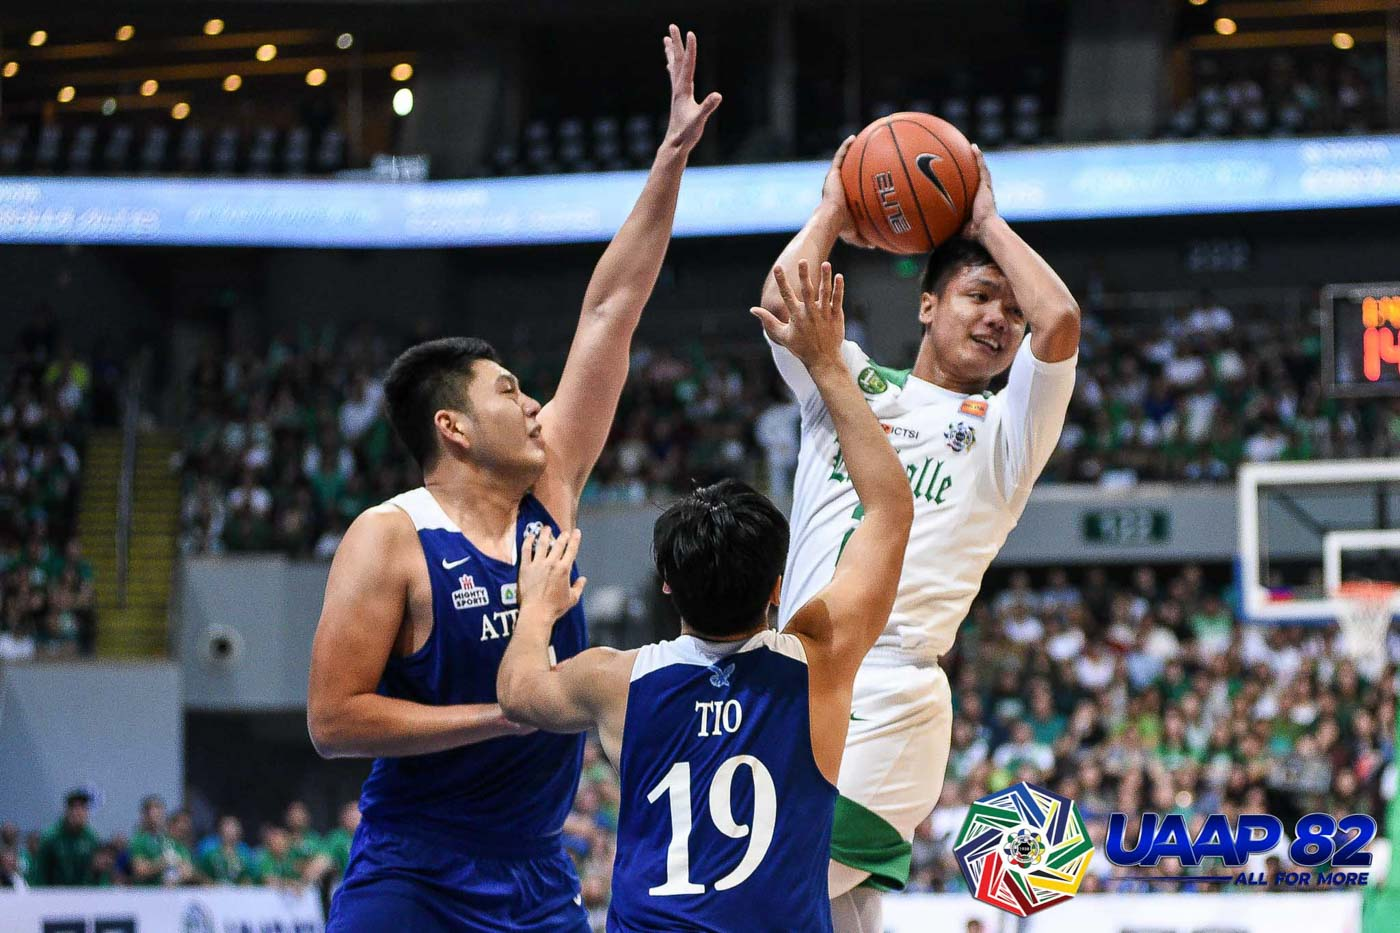 READY TO CHALLENGE. La Salle keeps pace with Ateneo early with guys like Encho Serrano u2013 who scatters 15 points, 8 rebounds, and 2 steals u2013 stepping up in key stretches. Photo release